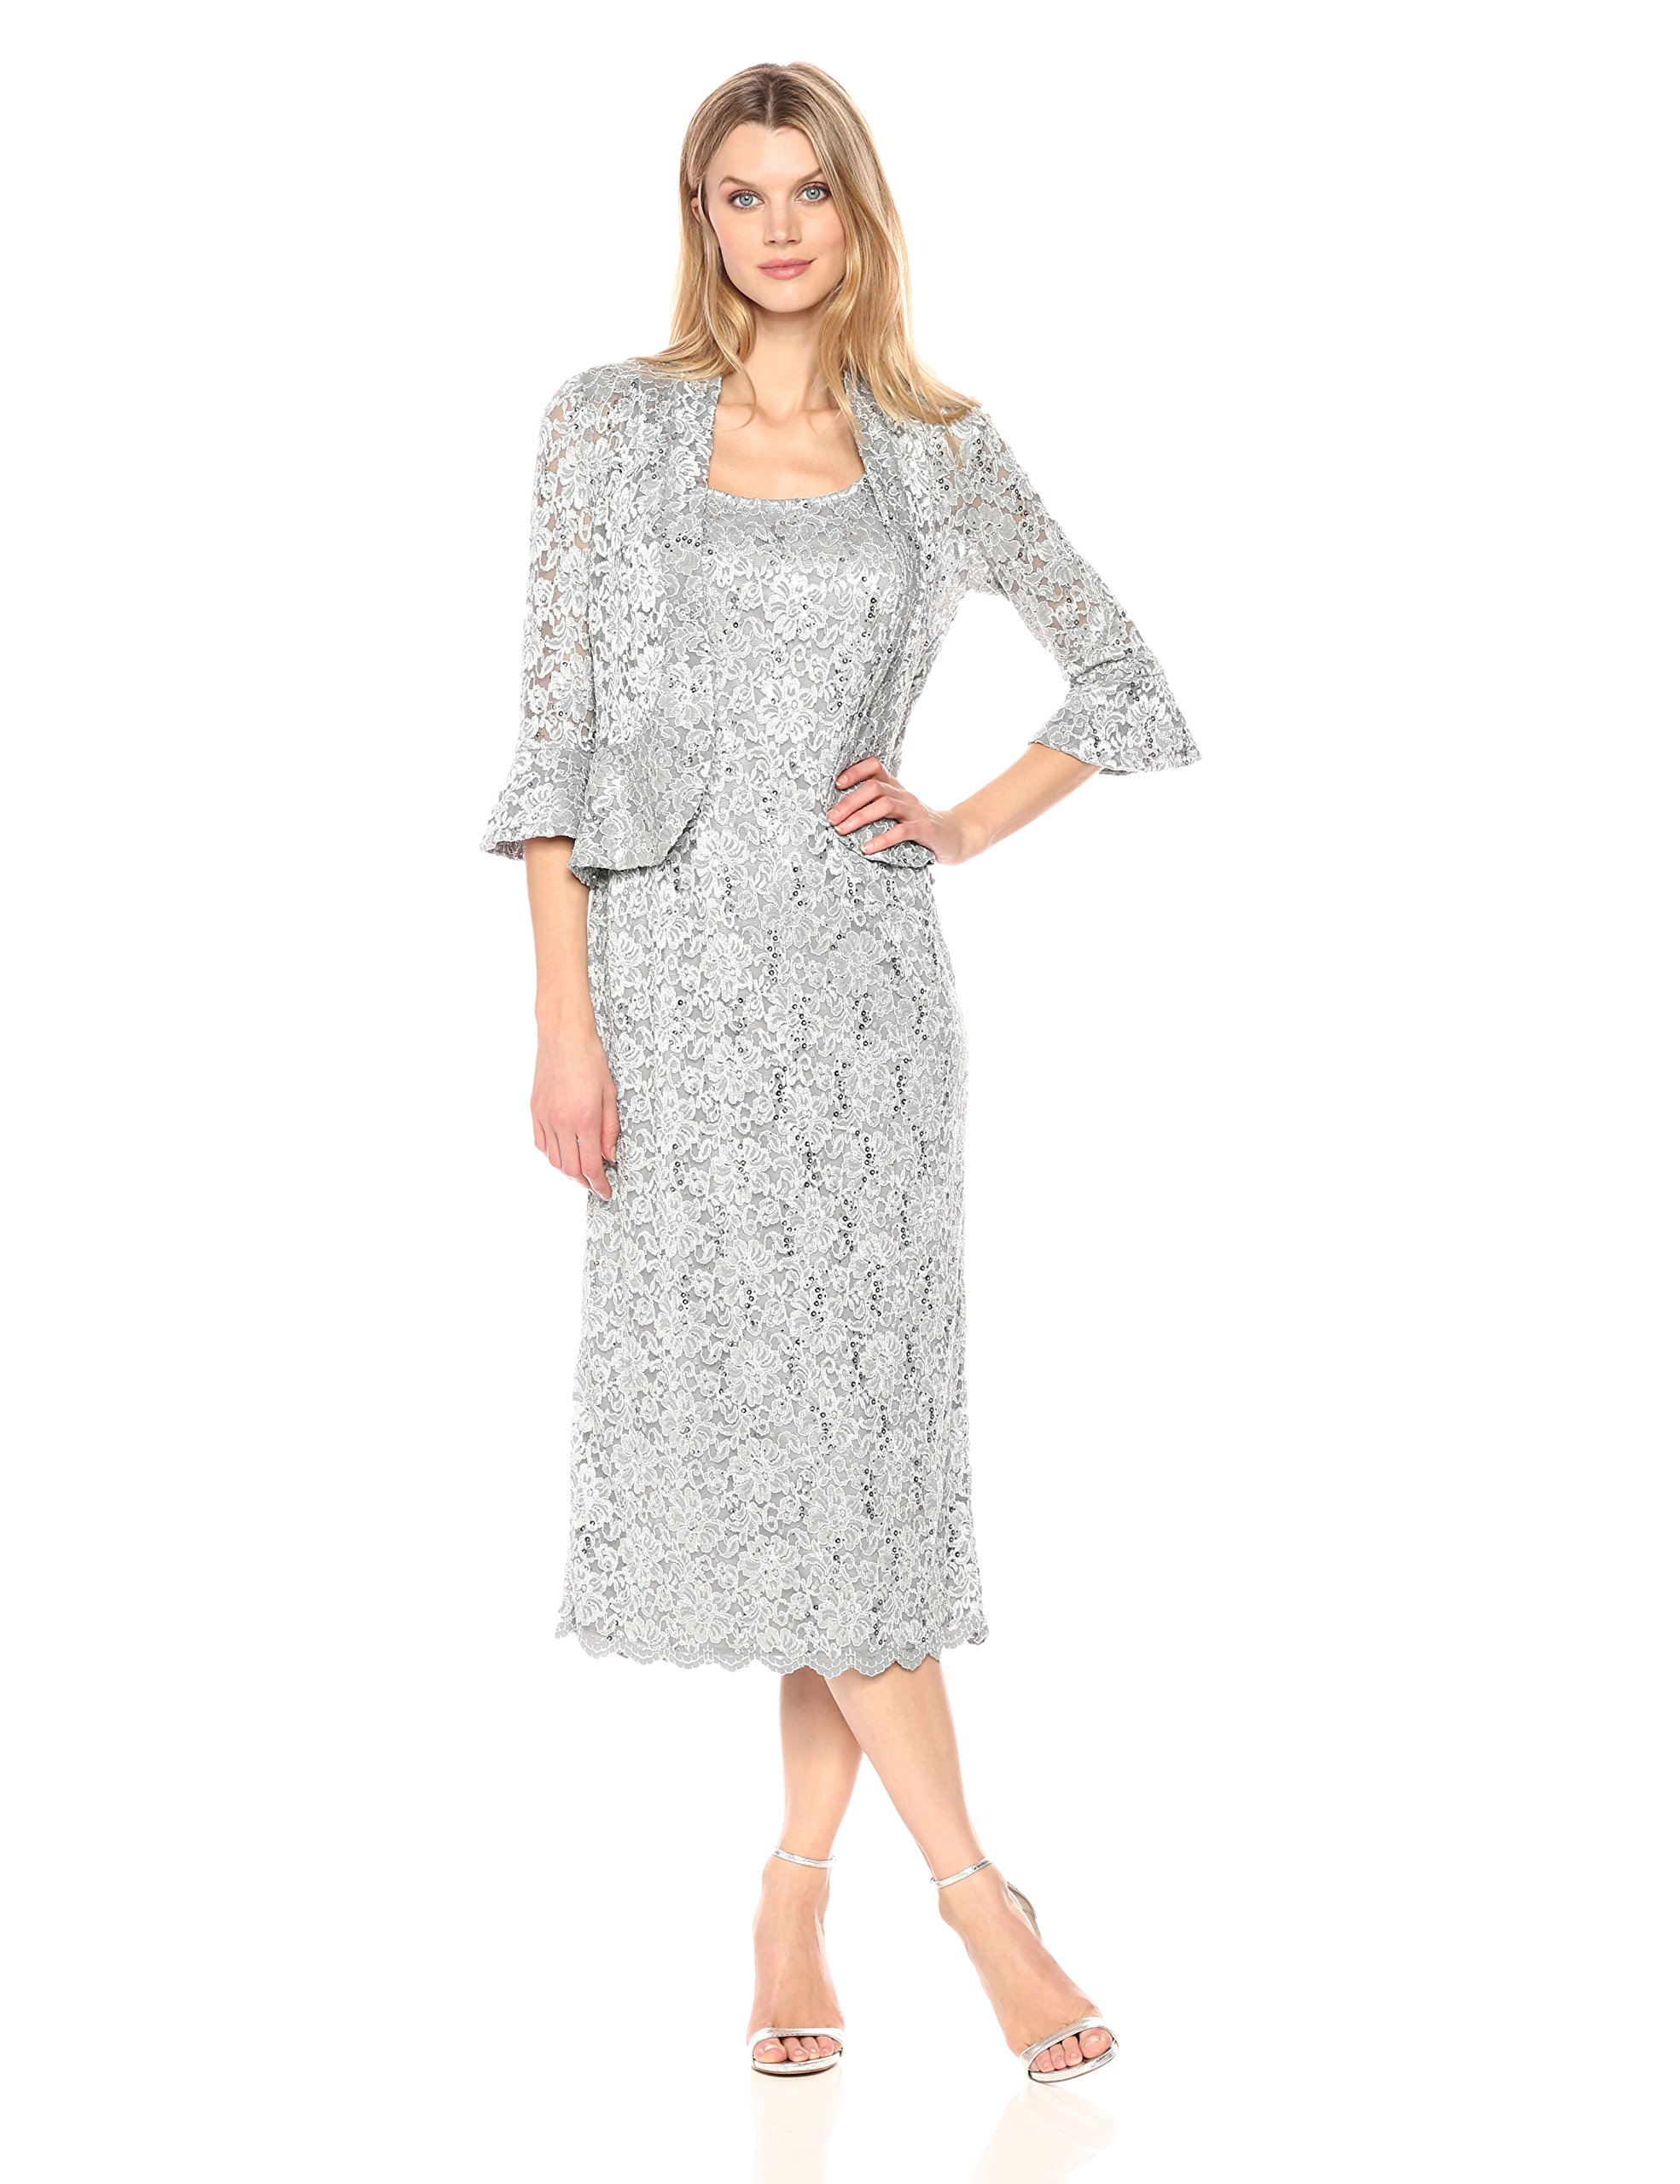 R&M Richards Women's Two Piece Lace Long Jacket Dress Missy, Silver, 12 by R&M Richards